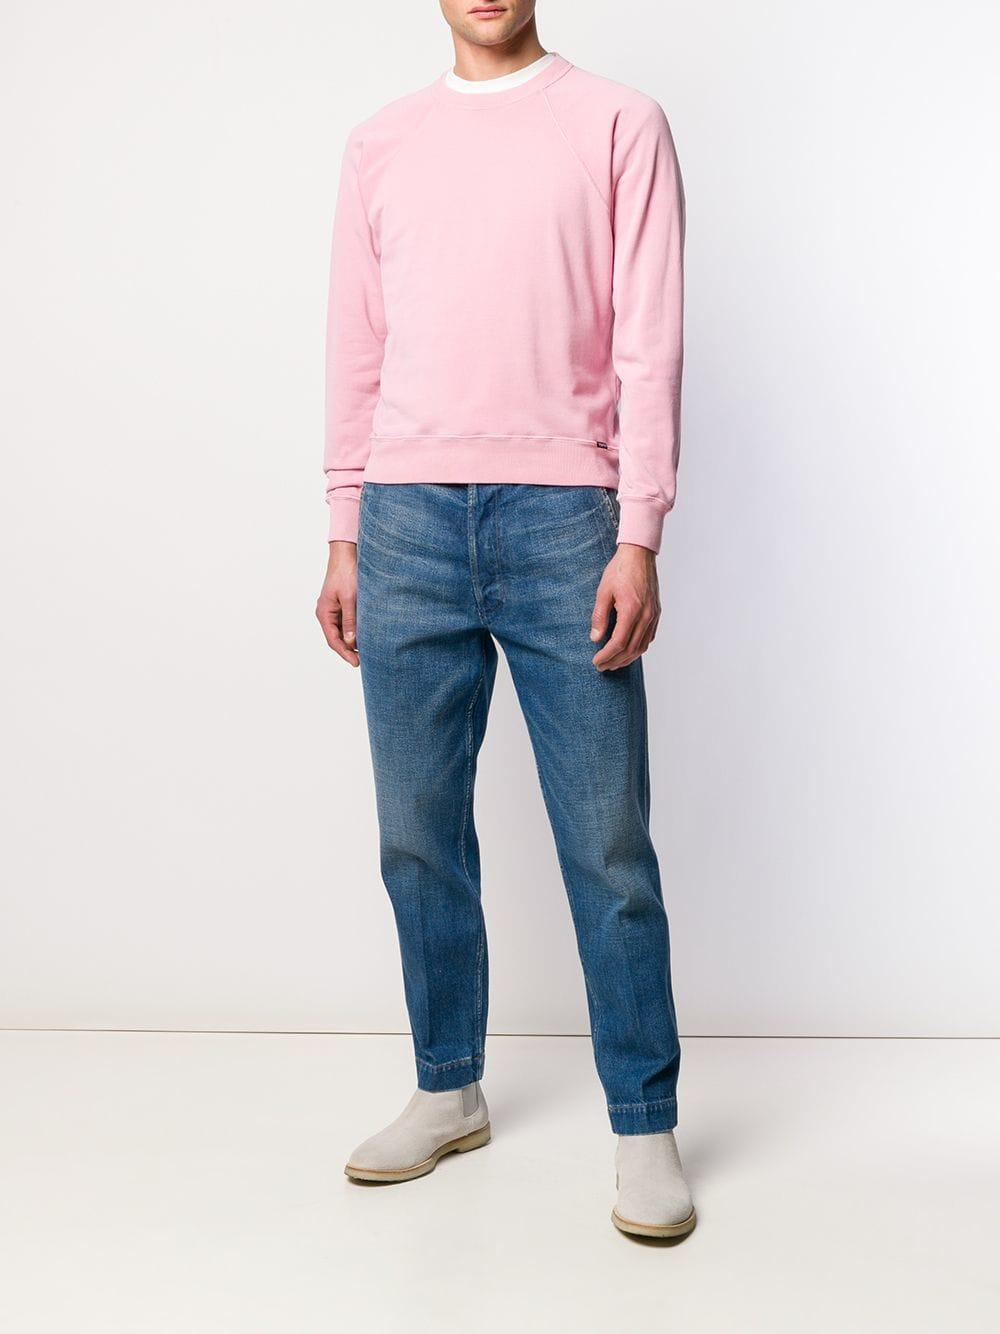 c280d6294e9 Lyst - Tom Ford Jersey Sweatshirt in Pink for Men - Save 1.2912482065997182%